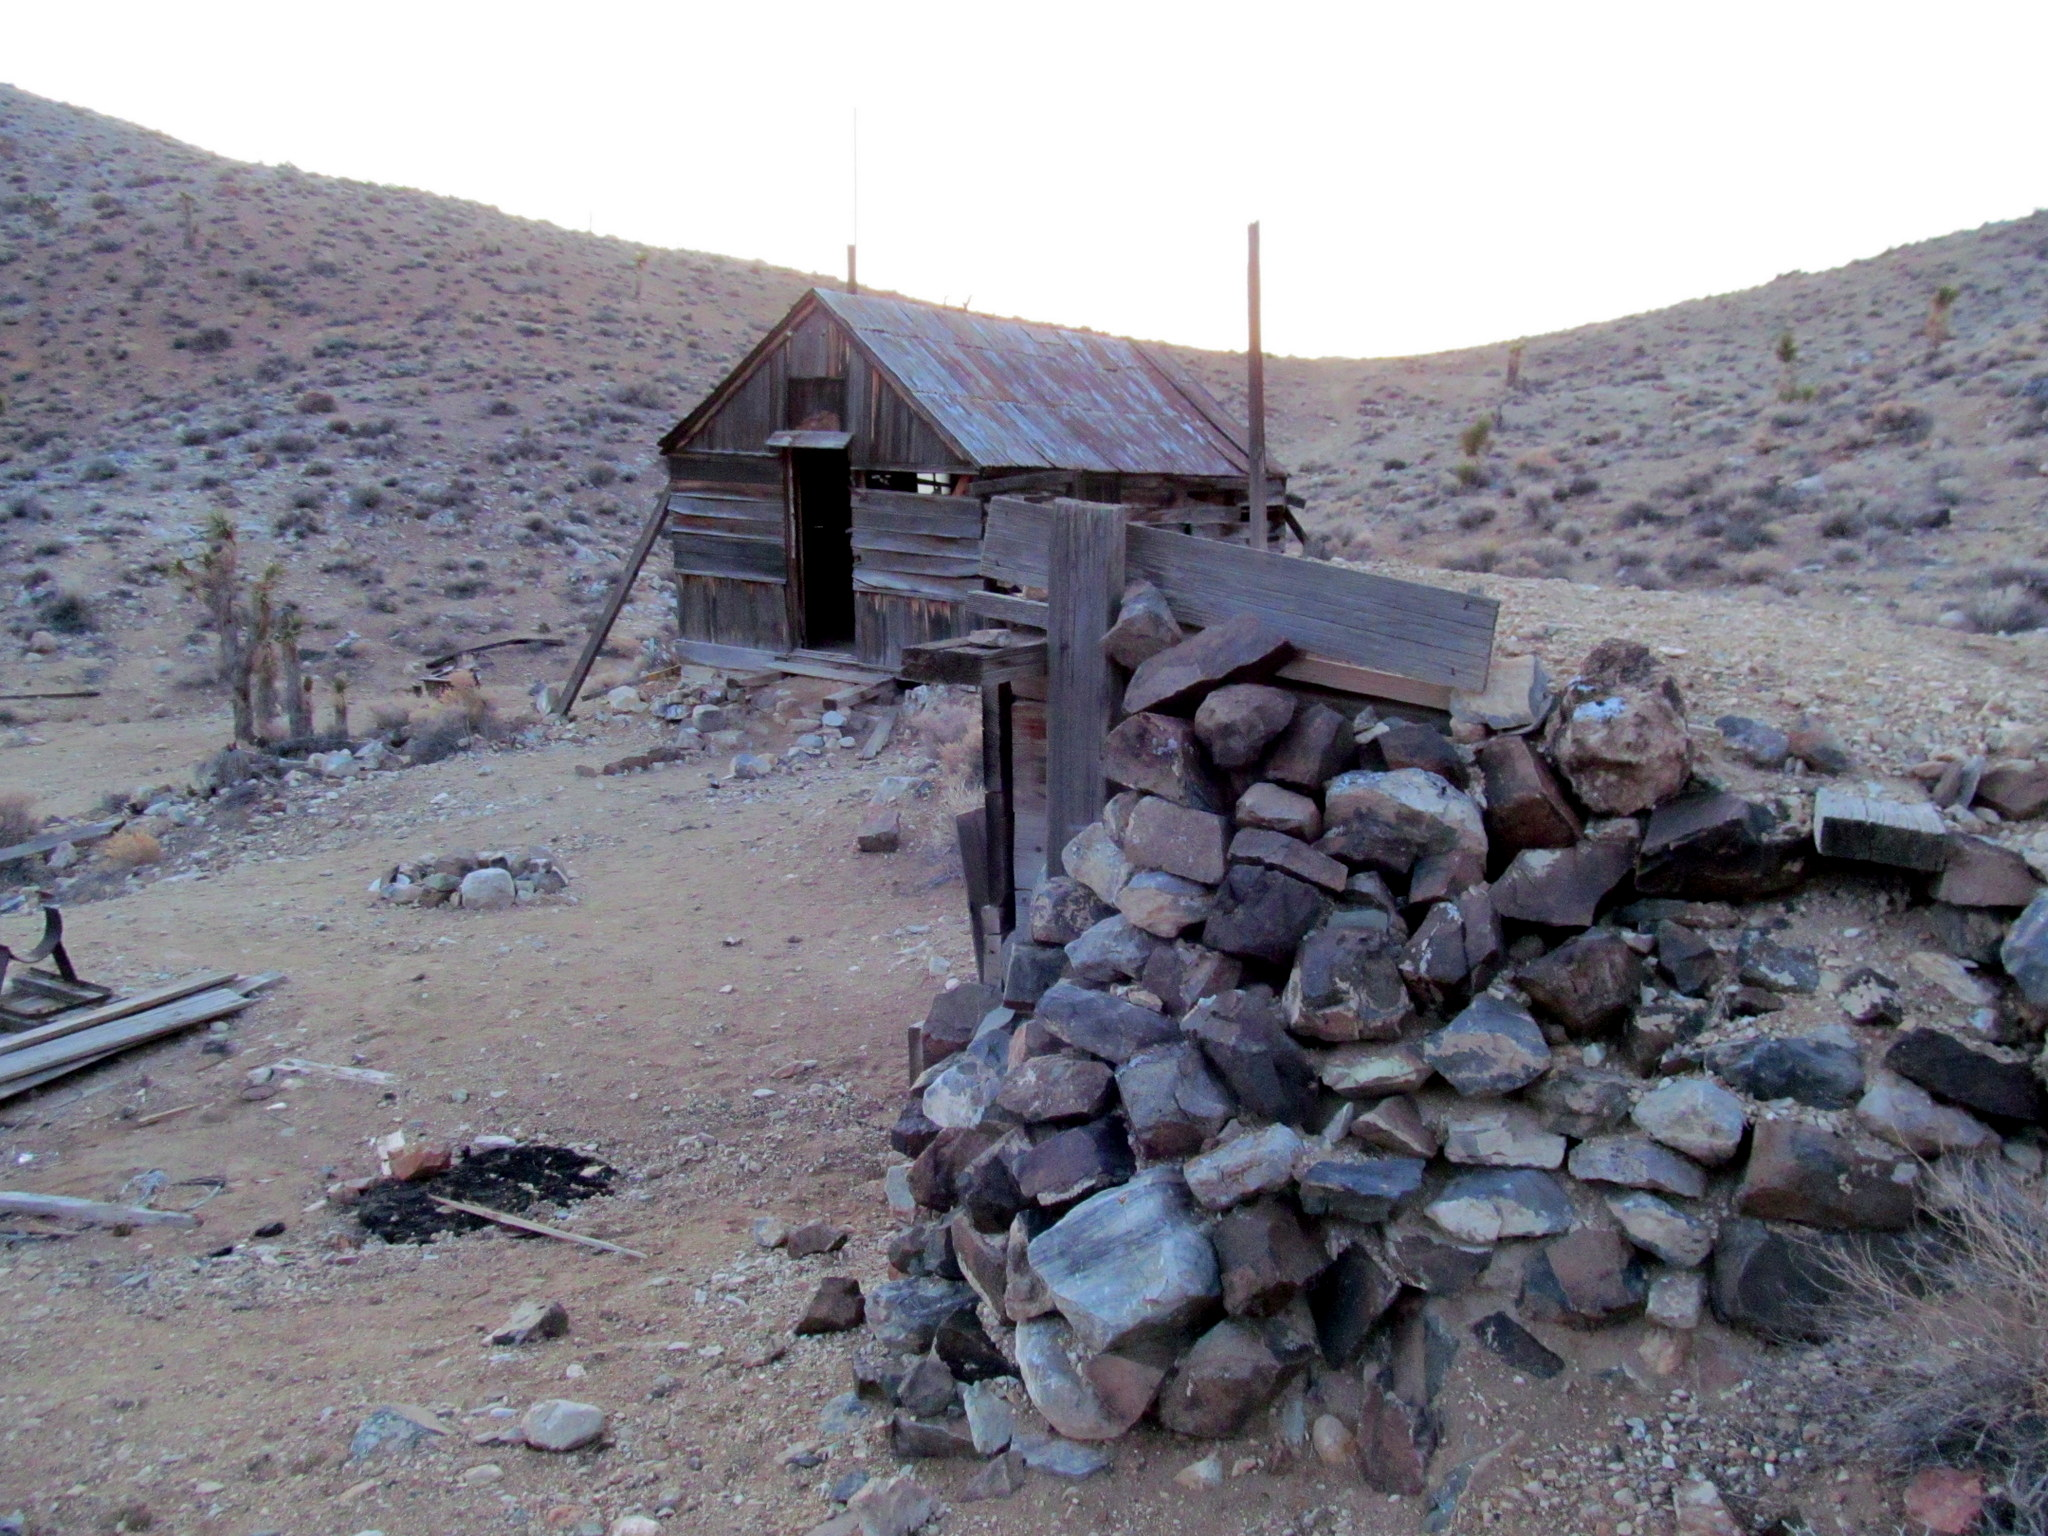 Photo: Buildings at the Lost Burro Mine